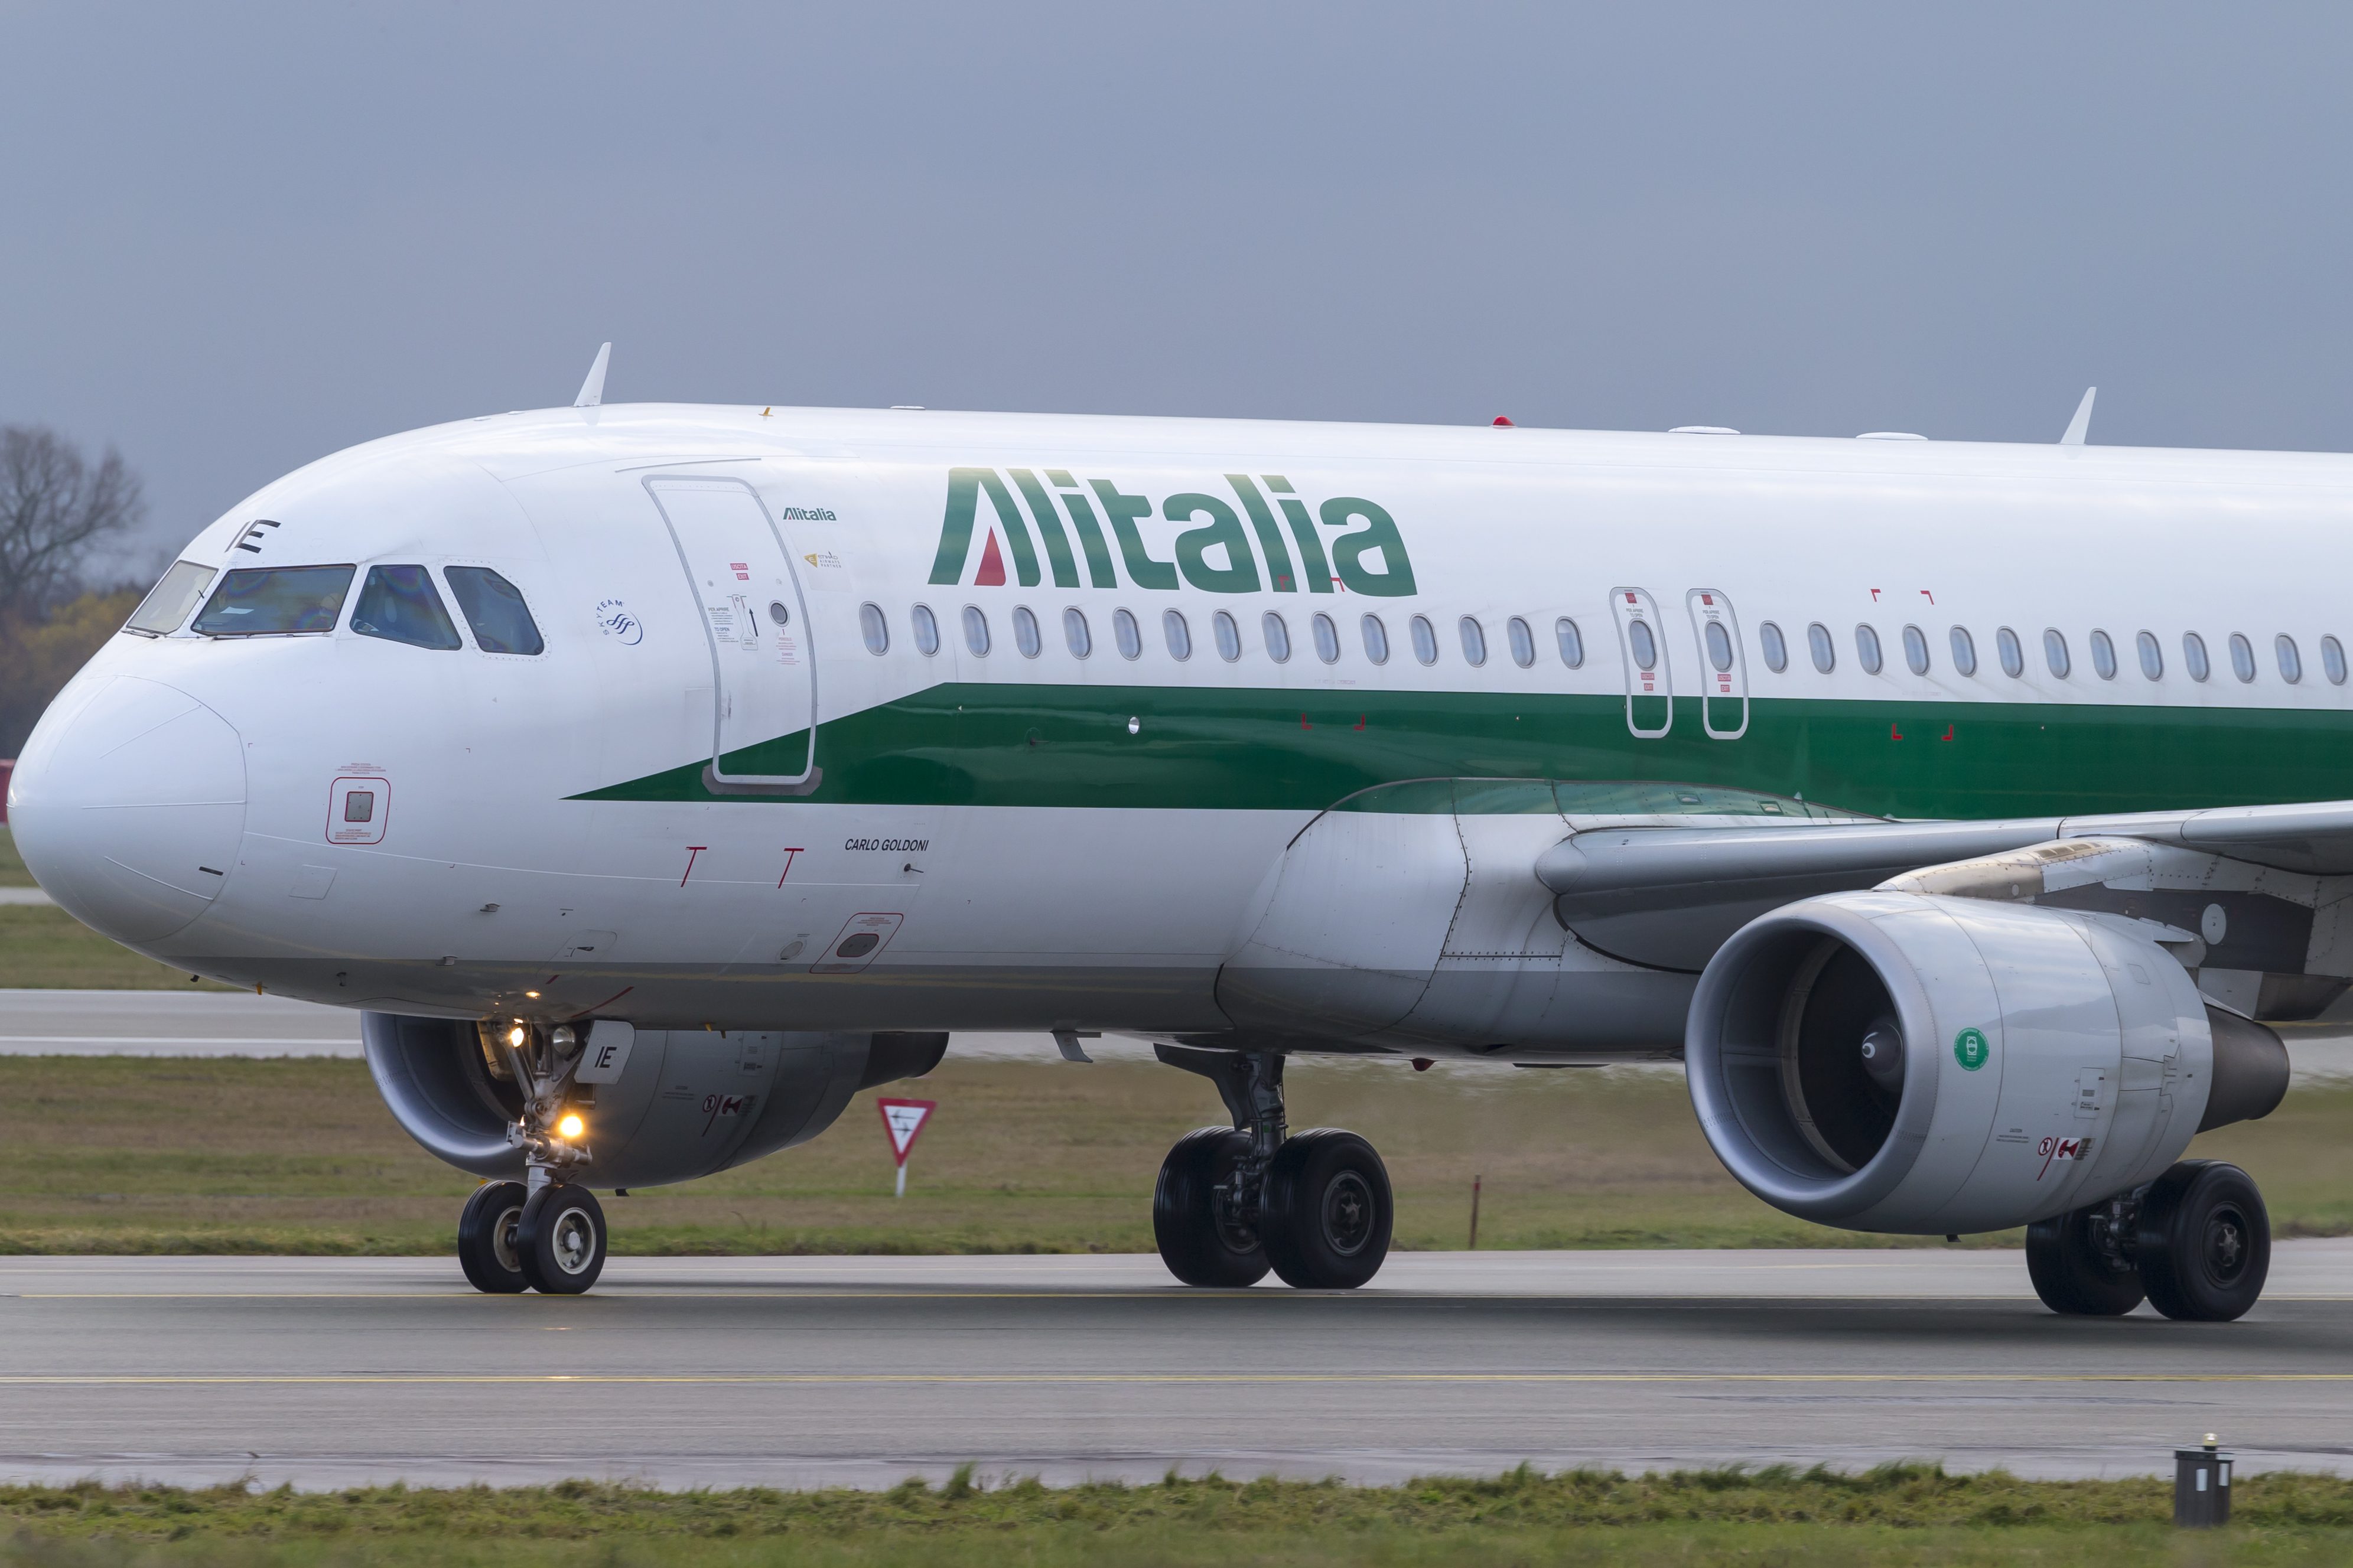 En Airbus A320 fra Alitalia. Foto: © Thorbjørn Brunander Sund, Danish Aviation Photo